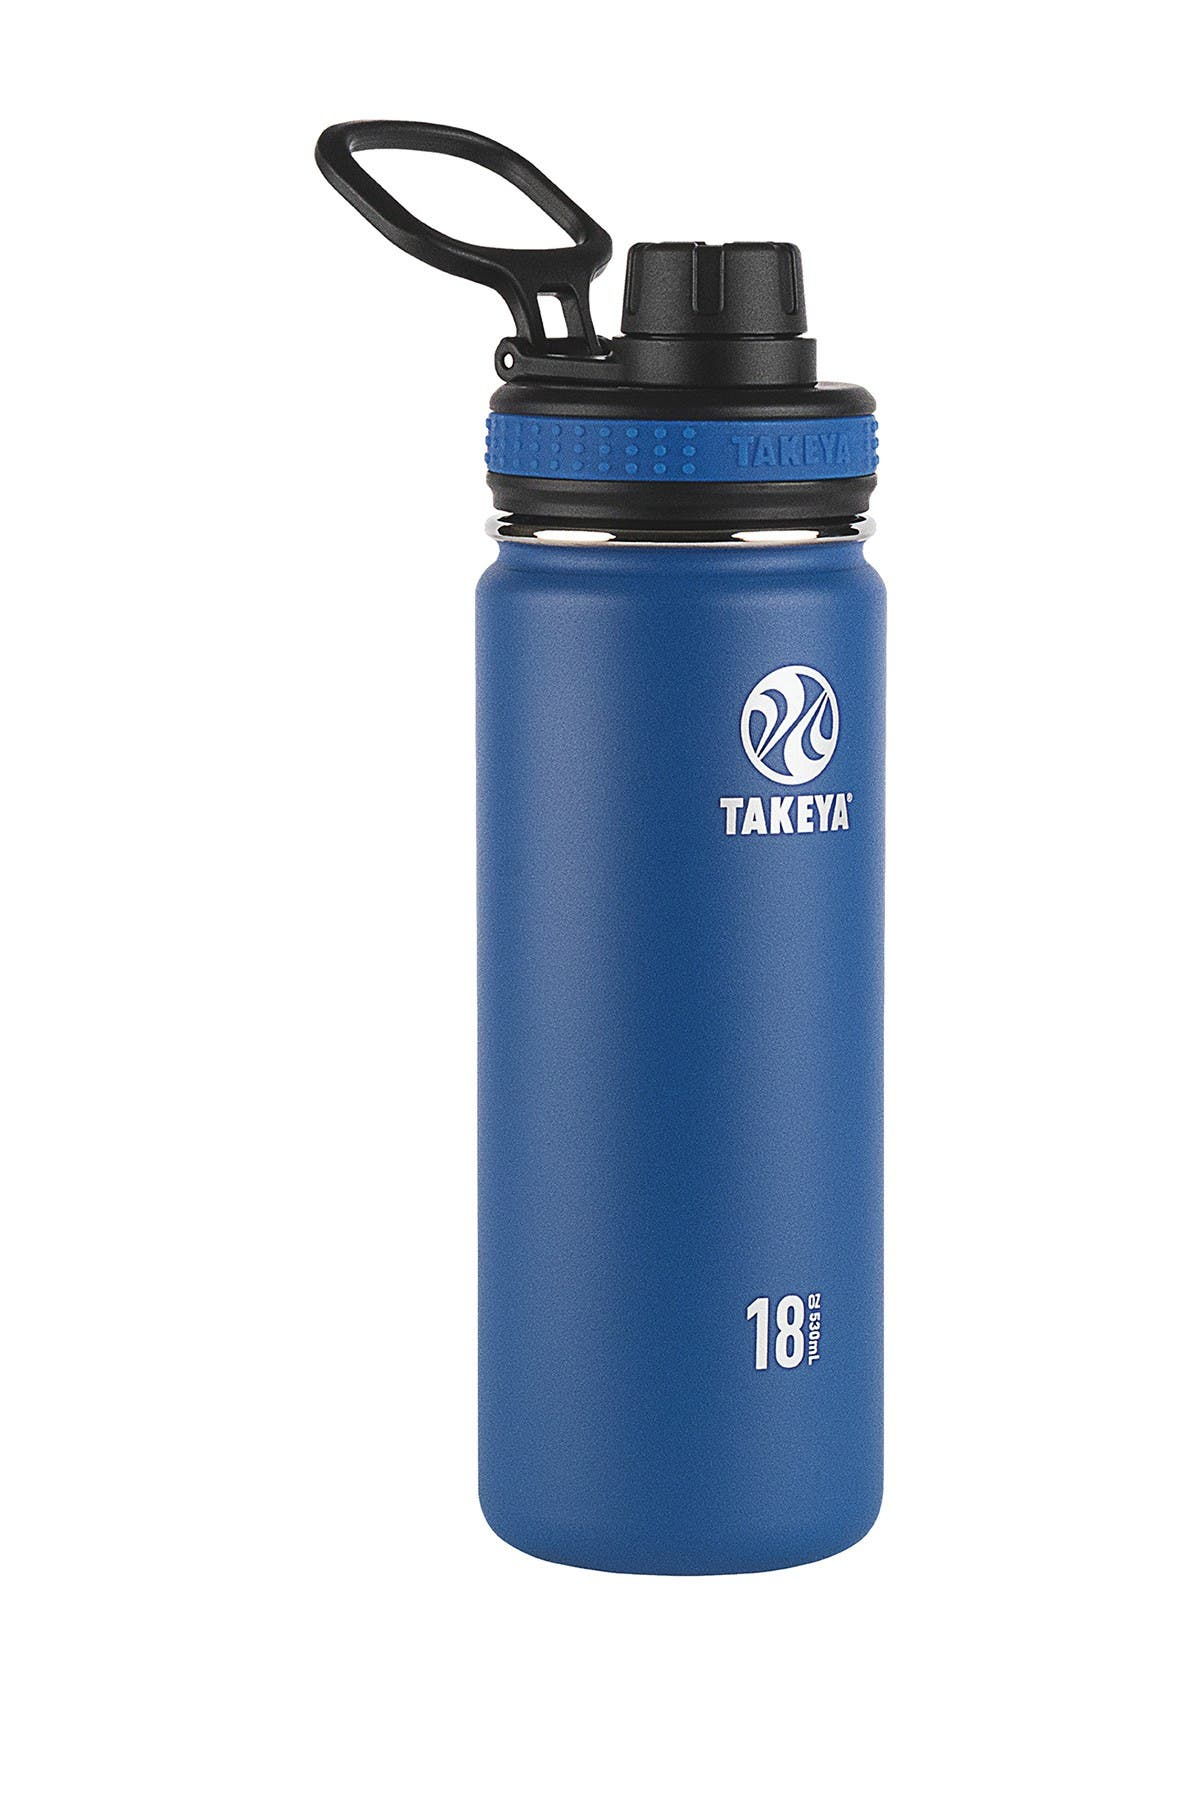 Image of Takeya Navy Originals Insulated Spout Lid 18oz. Stainless Steel Bottle